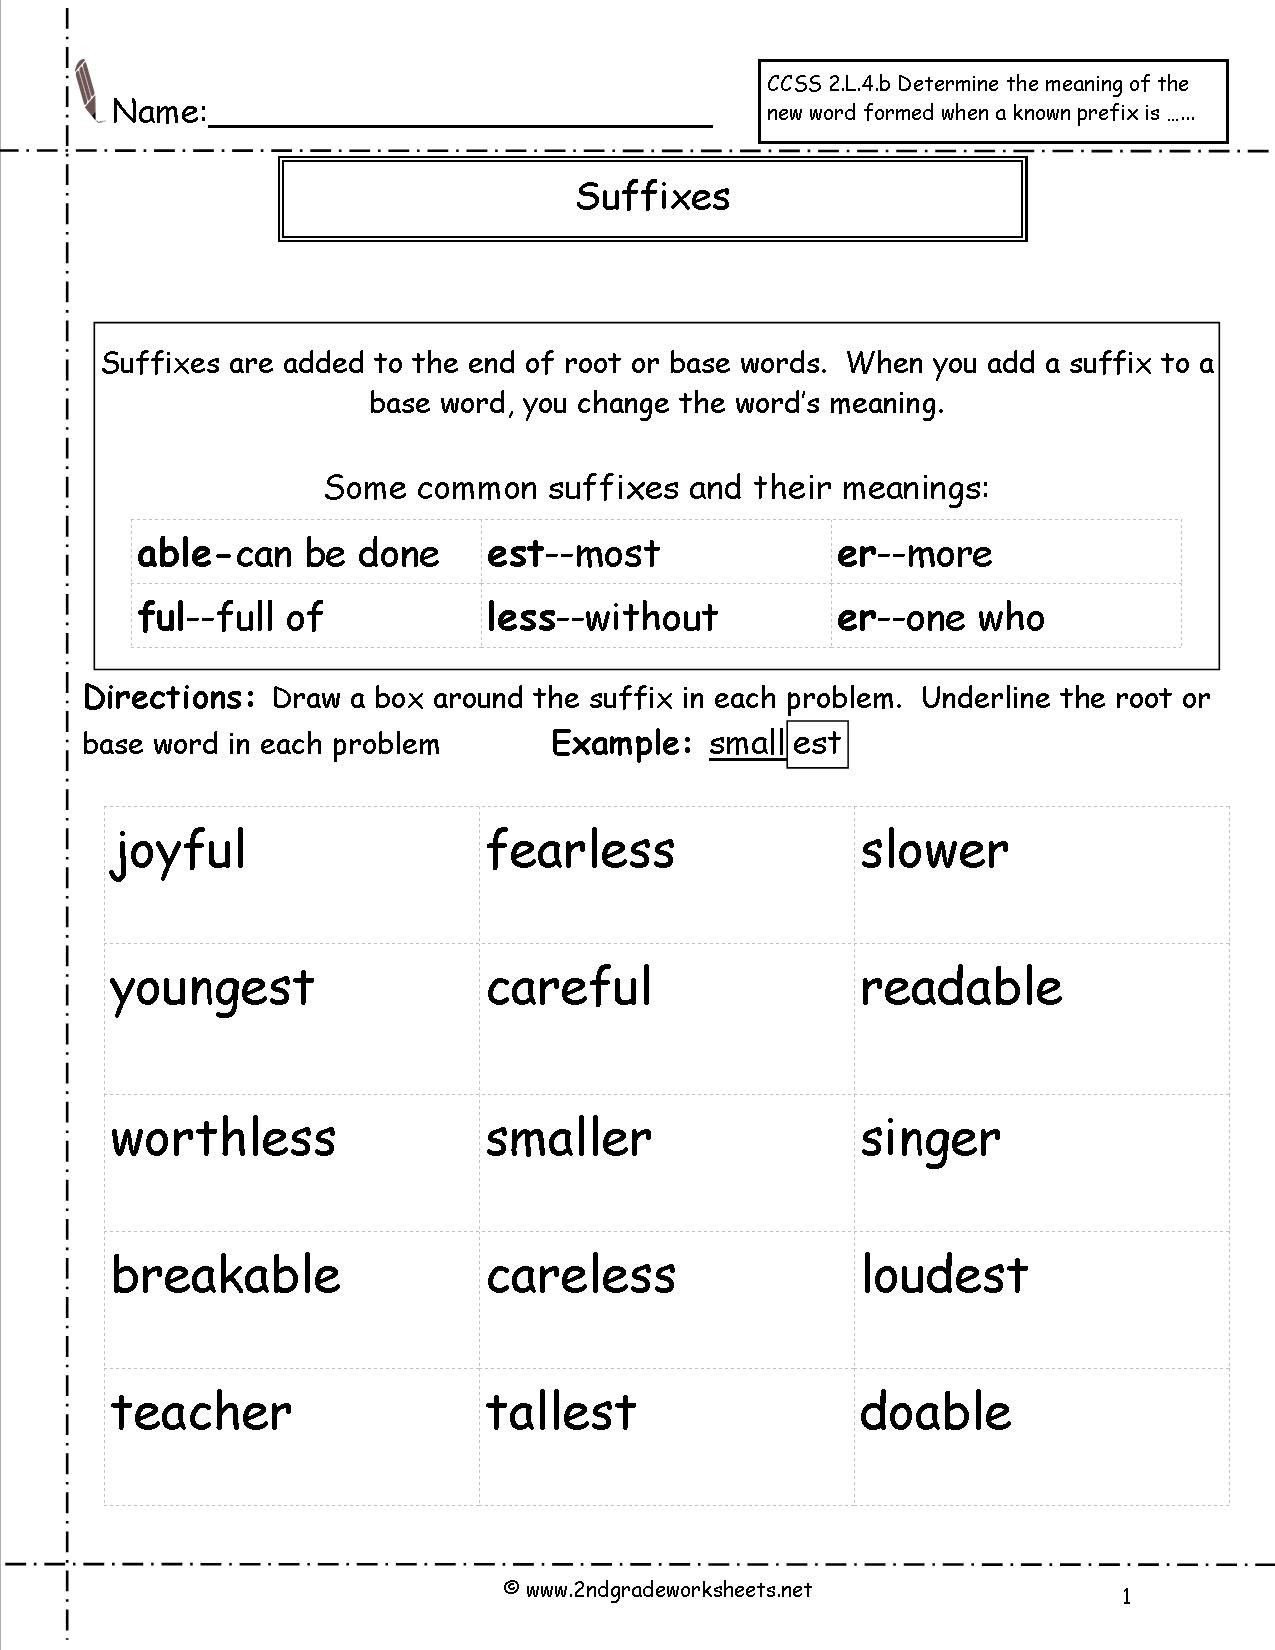 Suffix Worksheets 4th Grade Suffix Worksheets 2nd Grade